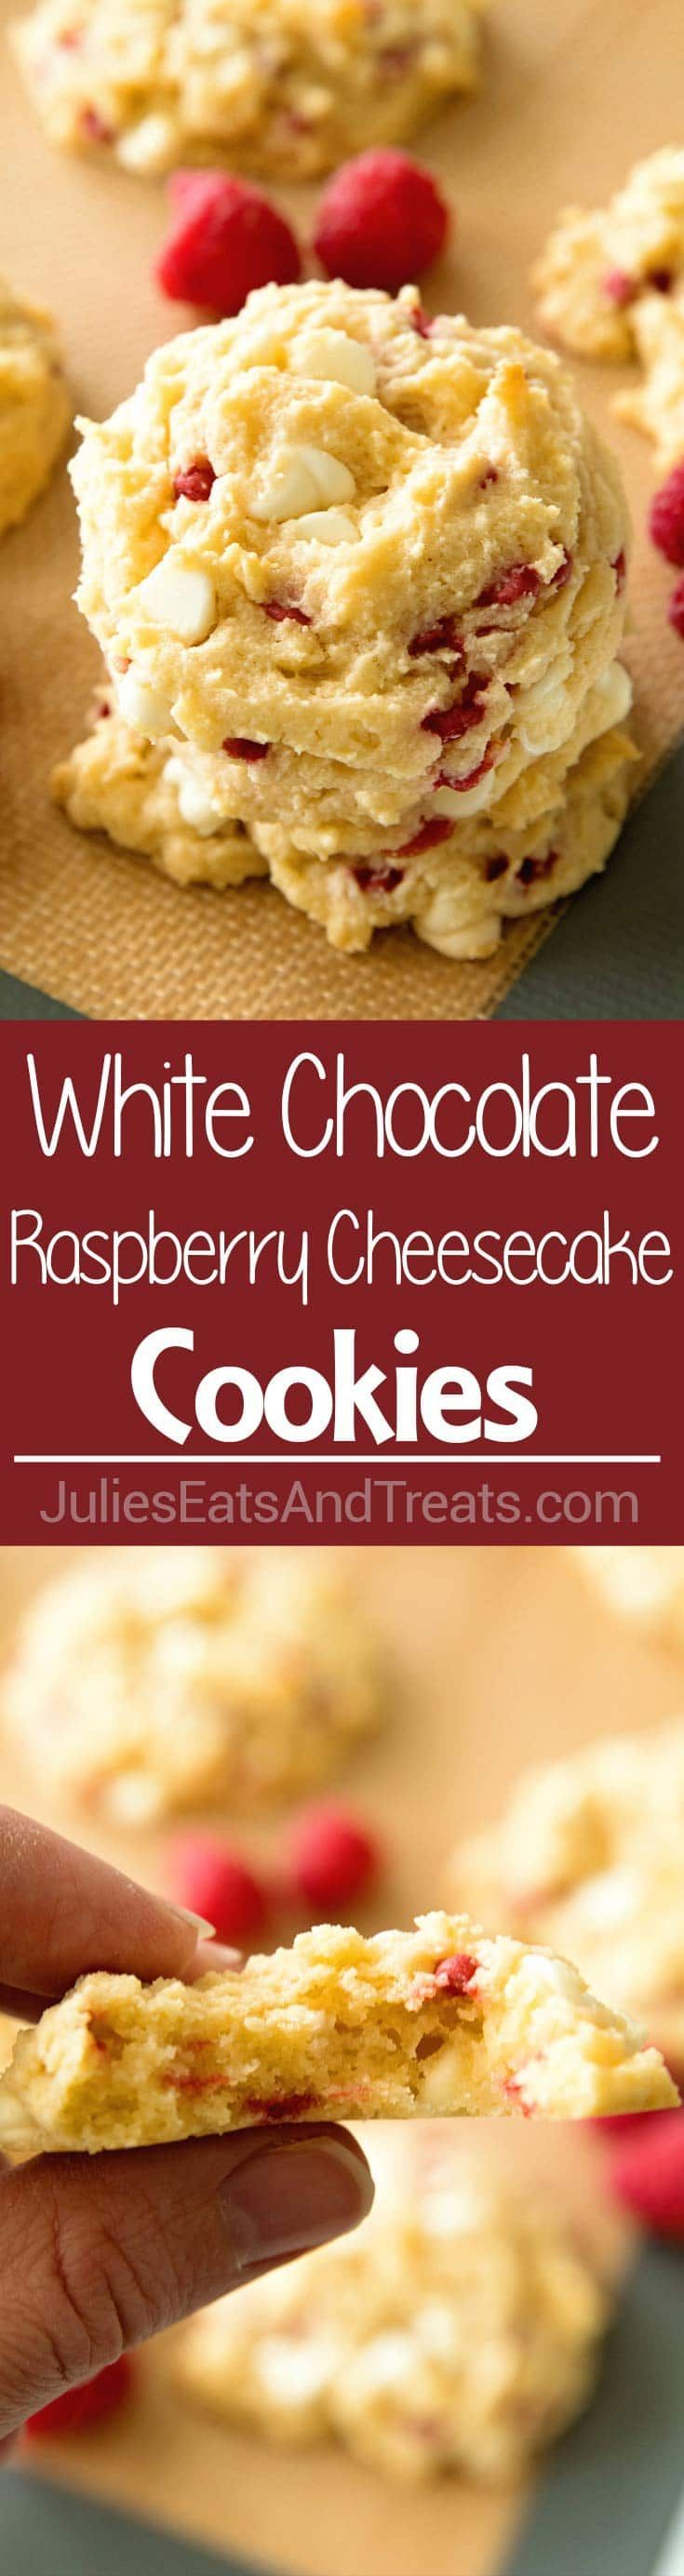 White Chocolate Raspberry Cheesecake Cookies ~ Copycat Subway cookies but even better! Now You Can Make Your Favorite Cookie at Home! via @julieseats